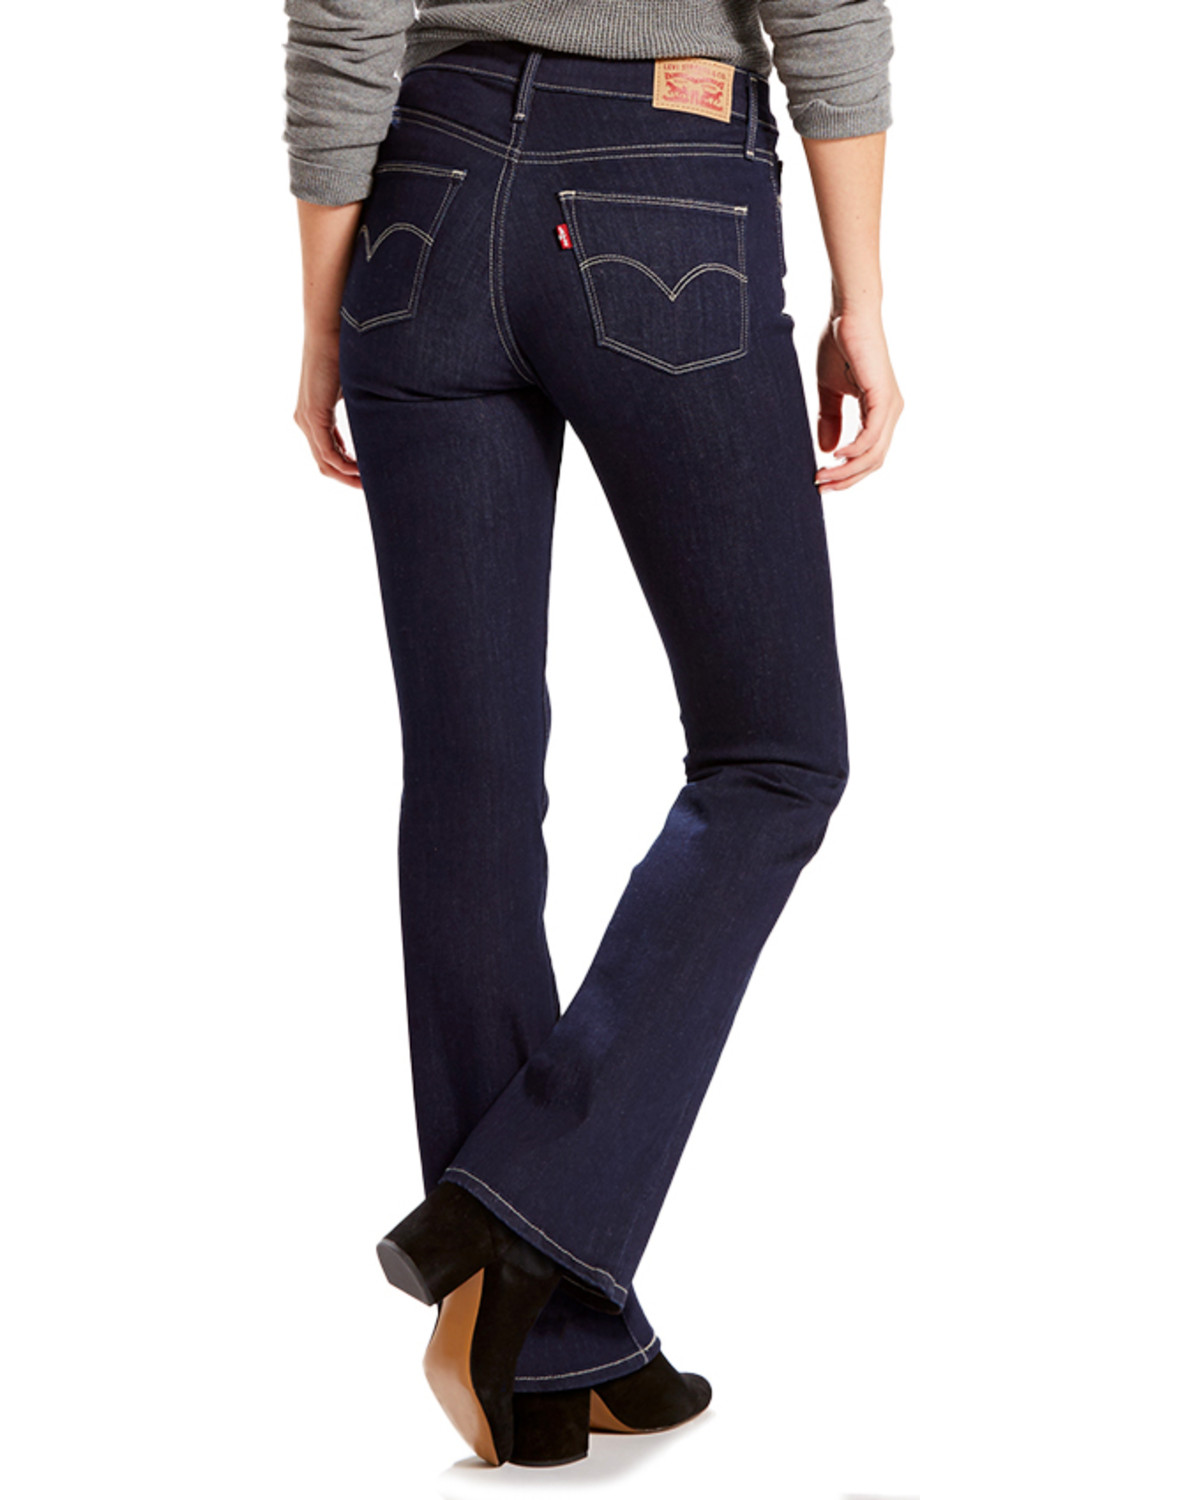 Leviu0026#39;s Womenu0026#39;s Slimming Boot Cut Jeans | Boot Barn